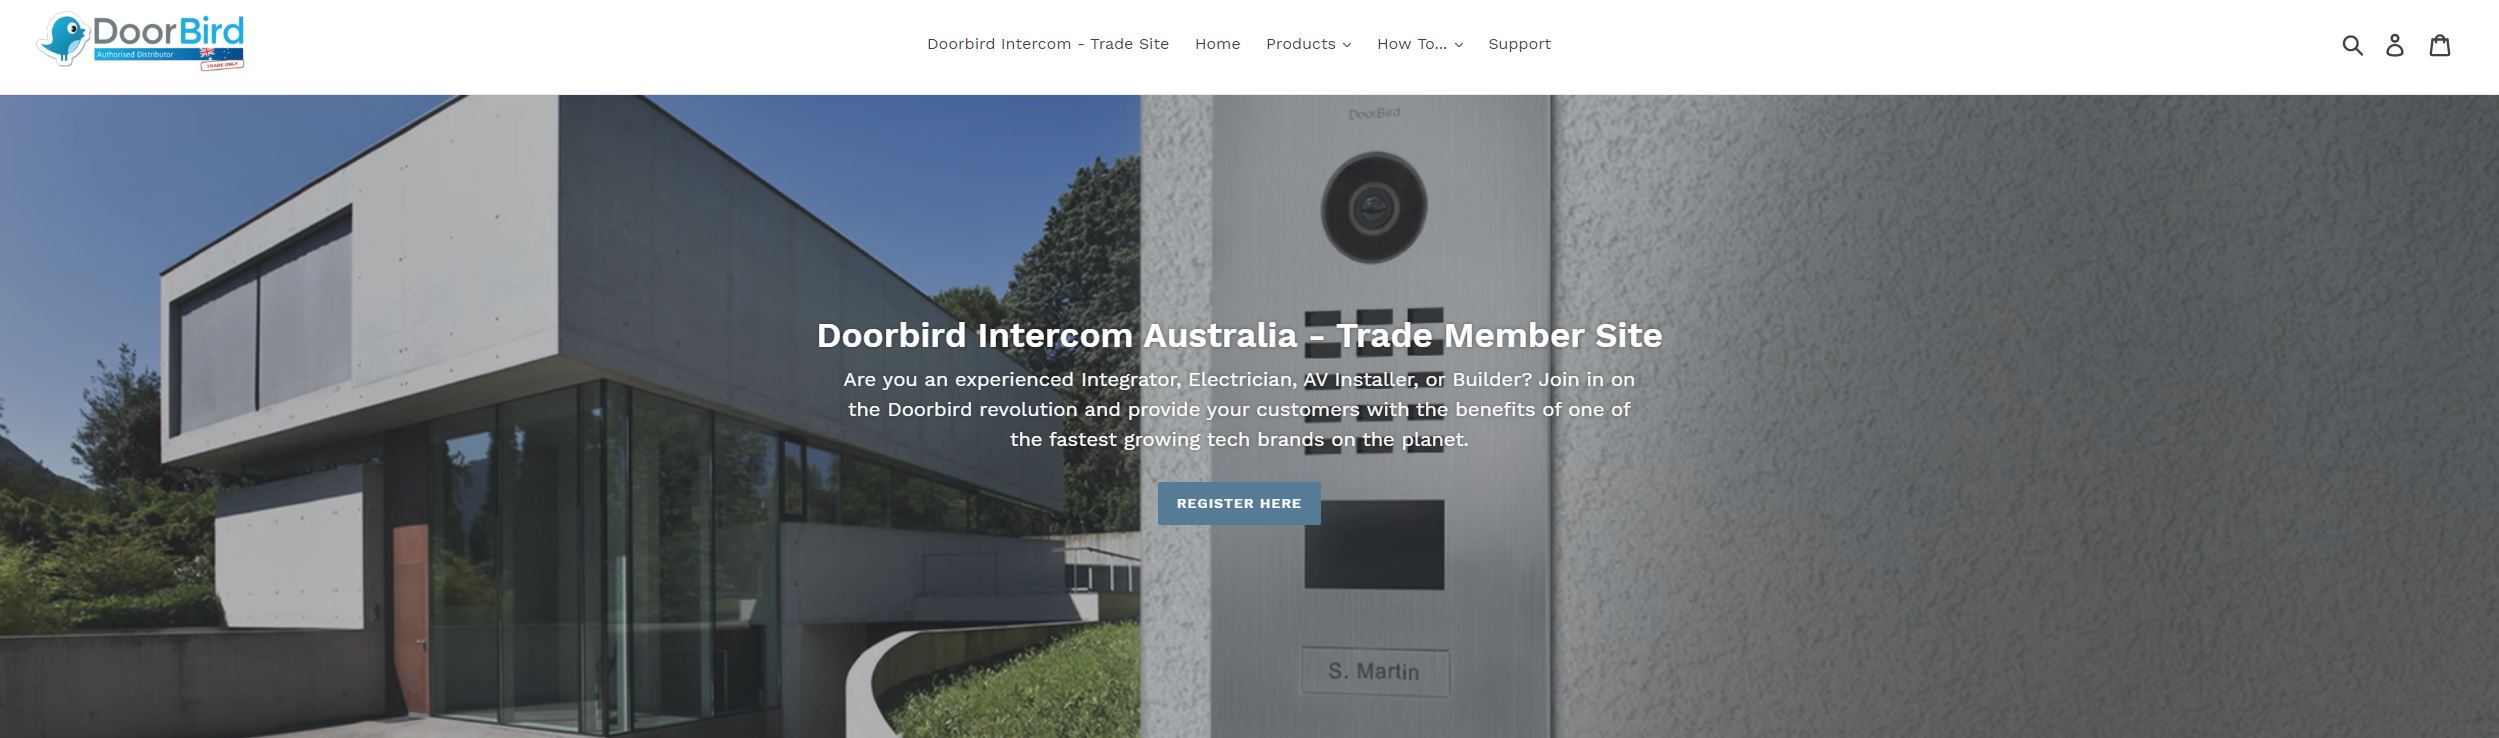 Doorbird Intercom Trade Site